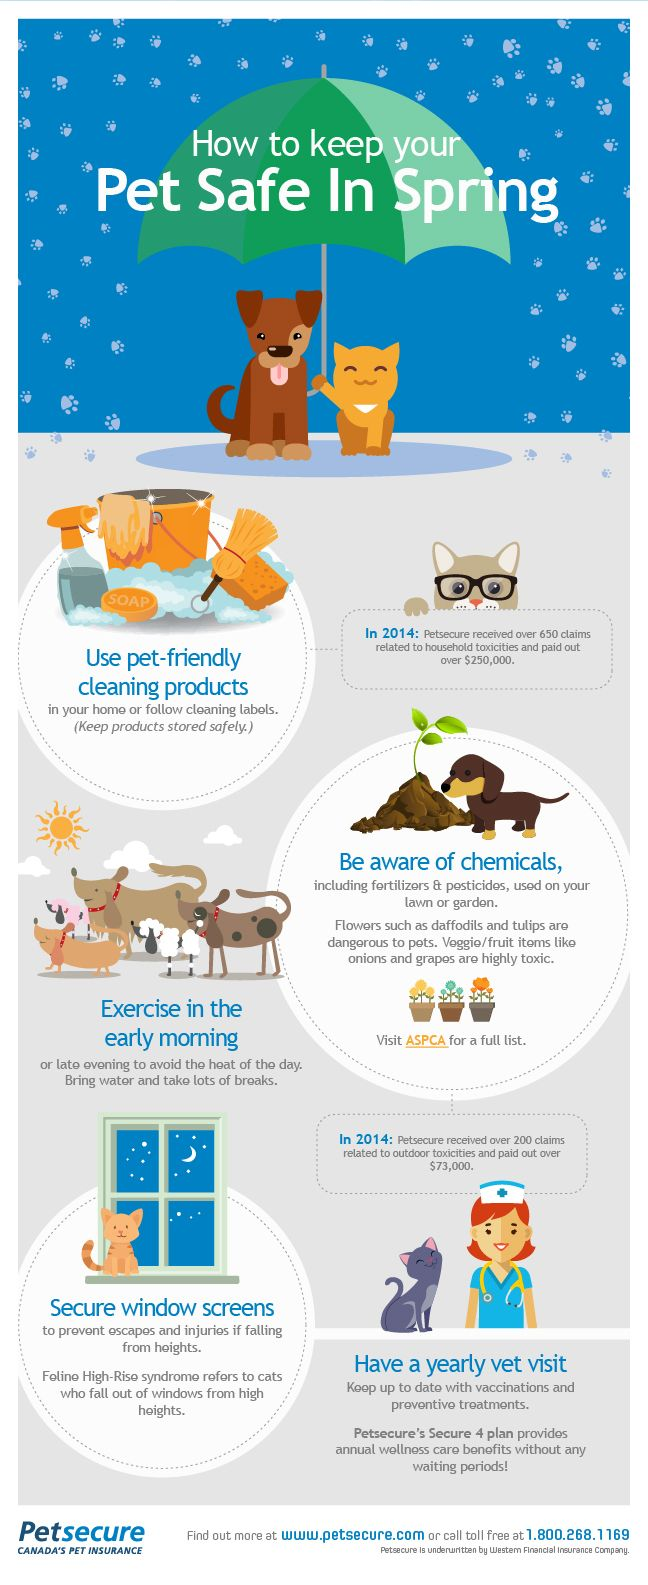 It's spring, and whether you're doing some spring cleaning, taking advantage of the warm weather and getting outdoors or even working on your garden, you want to keep your pets safe. Here are some handy spring safety tips!